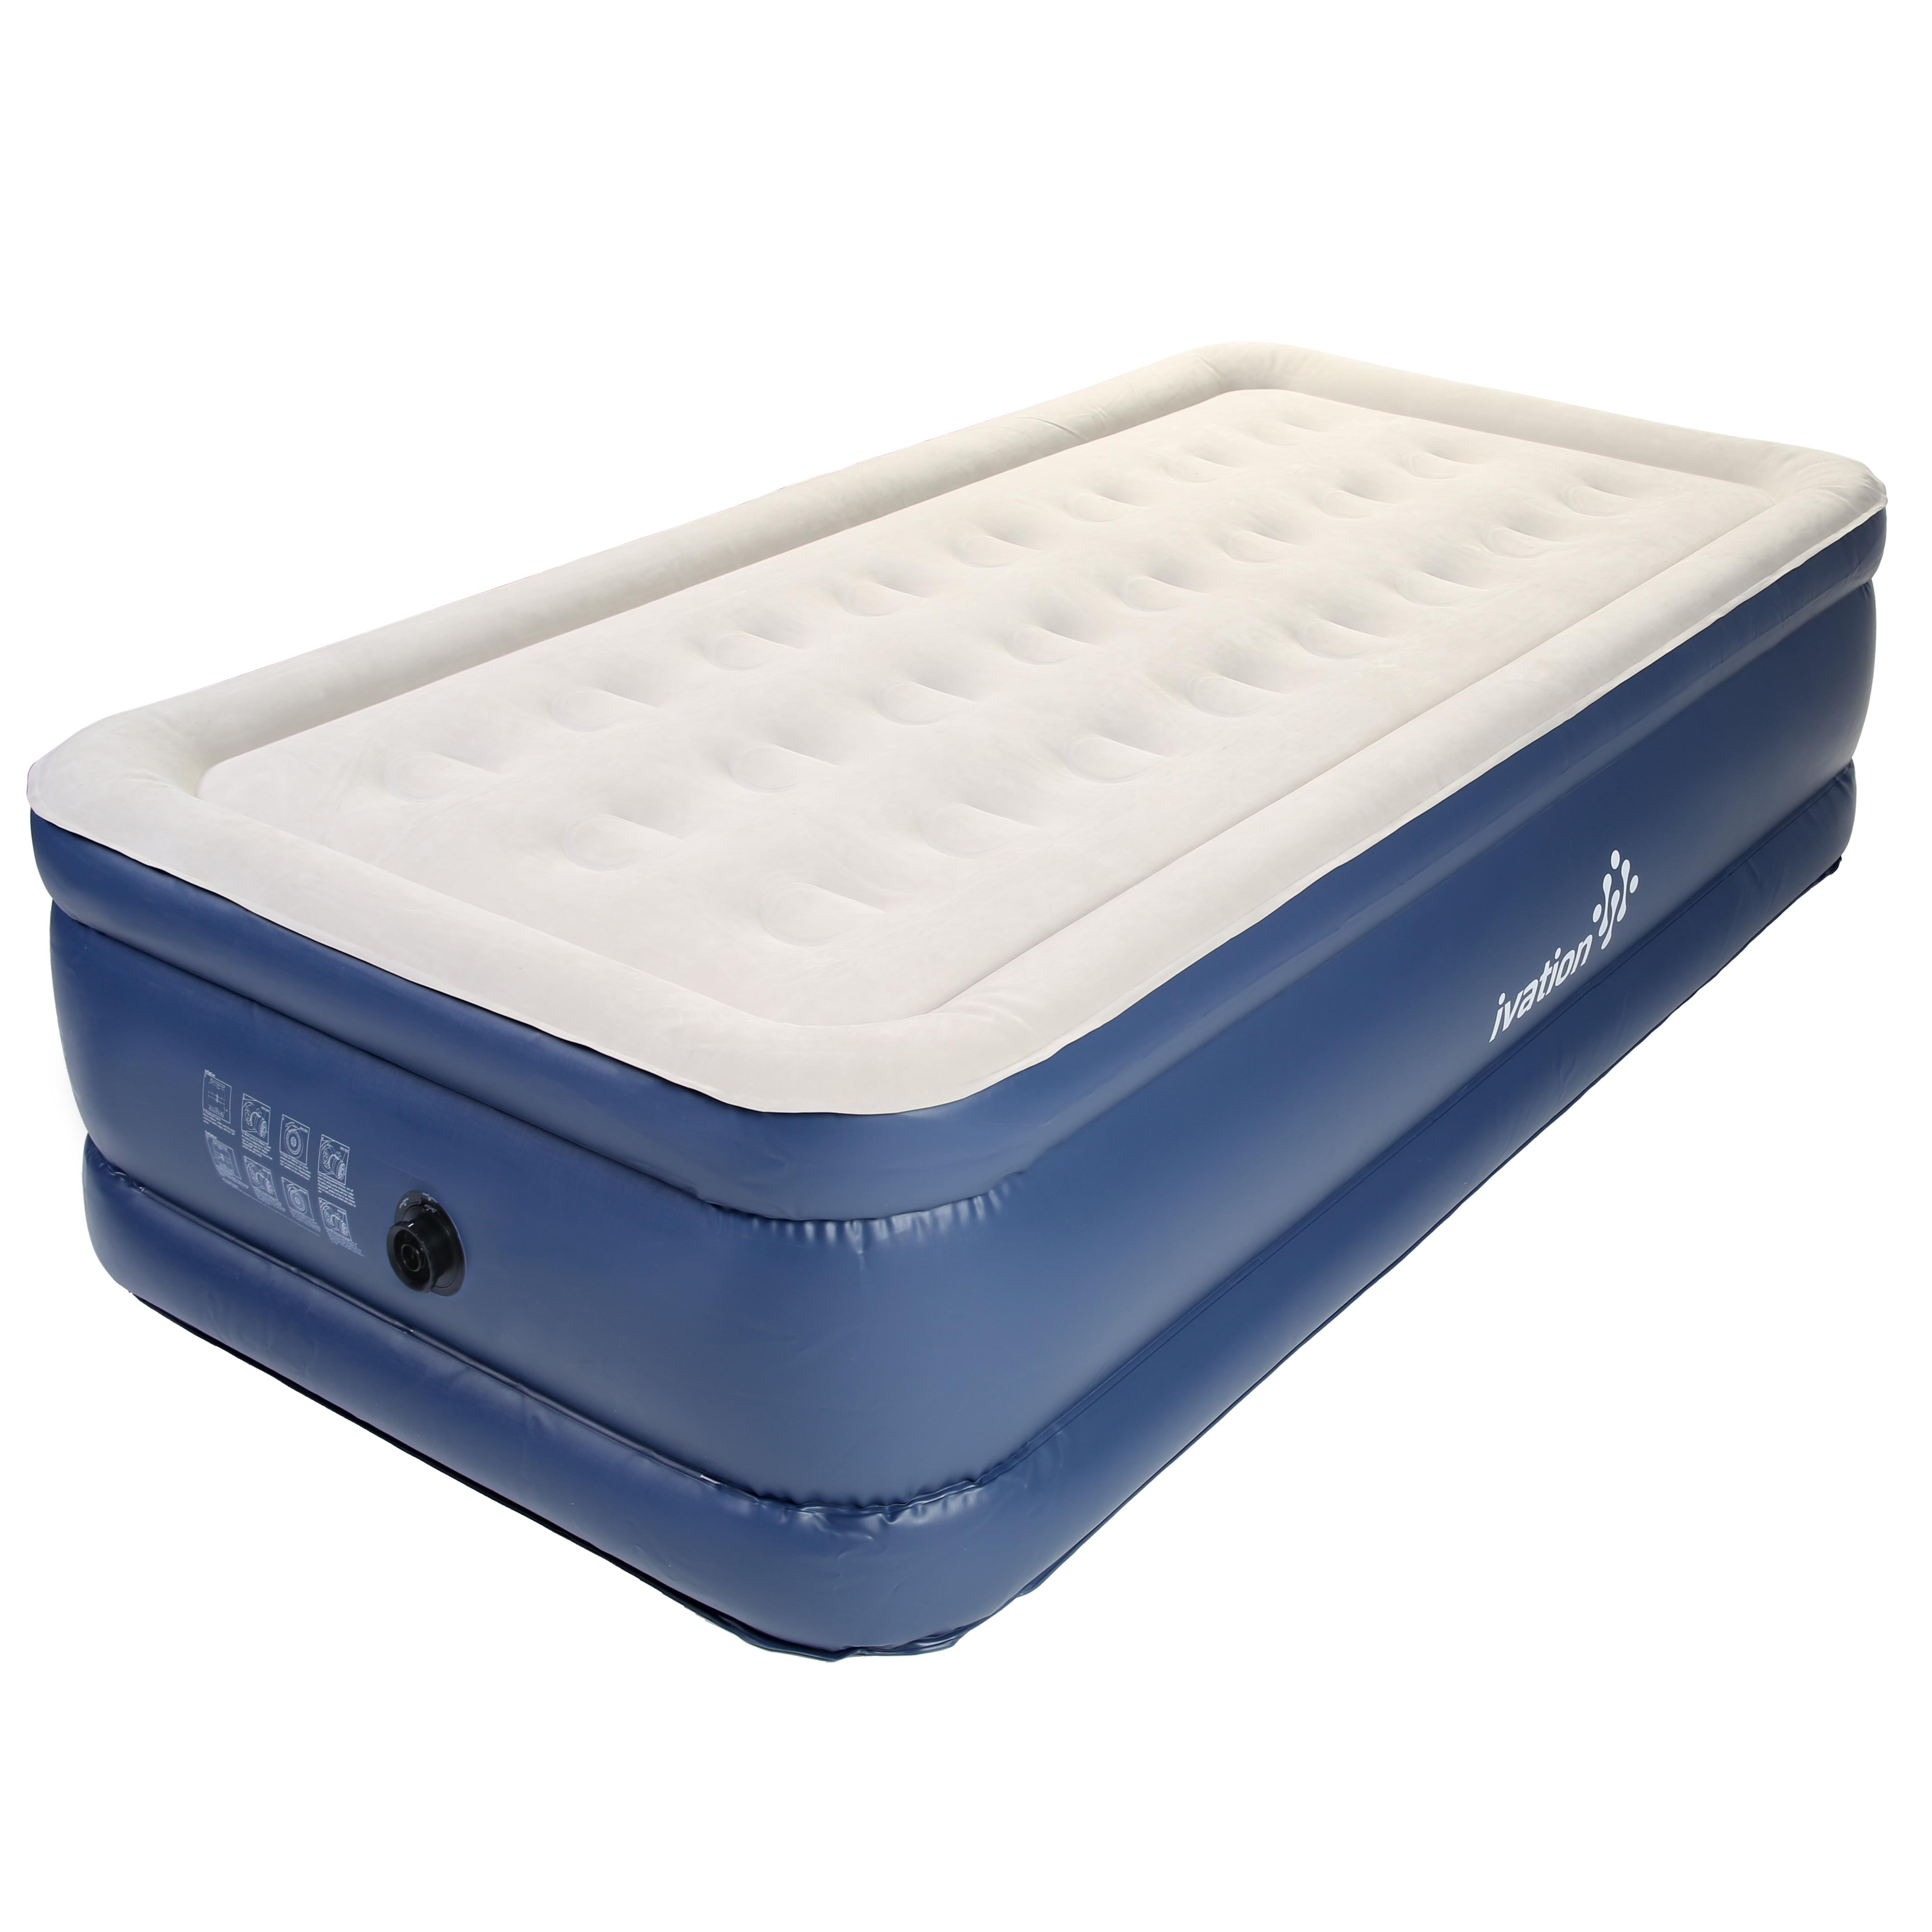 Amazon.com: Ivation Inflatable Twin Air Bed - Double ...